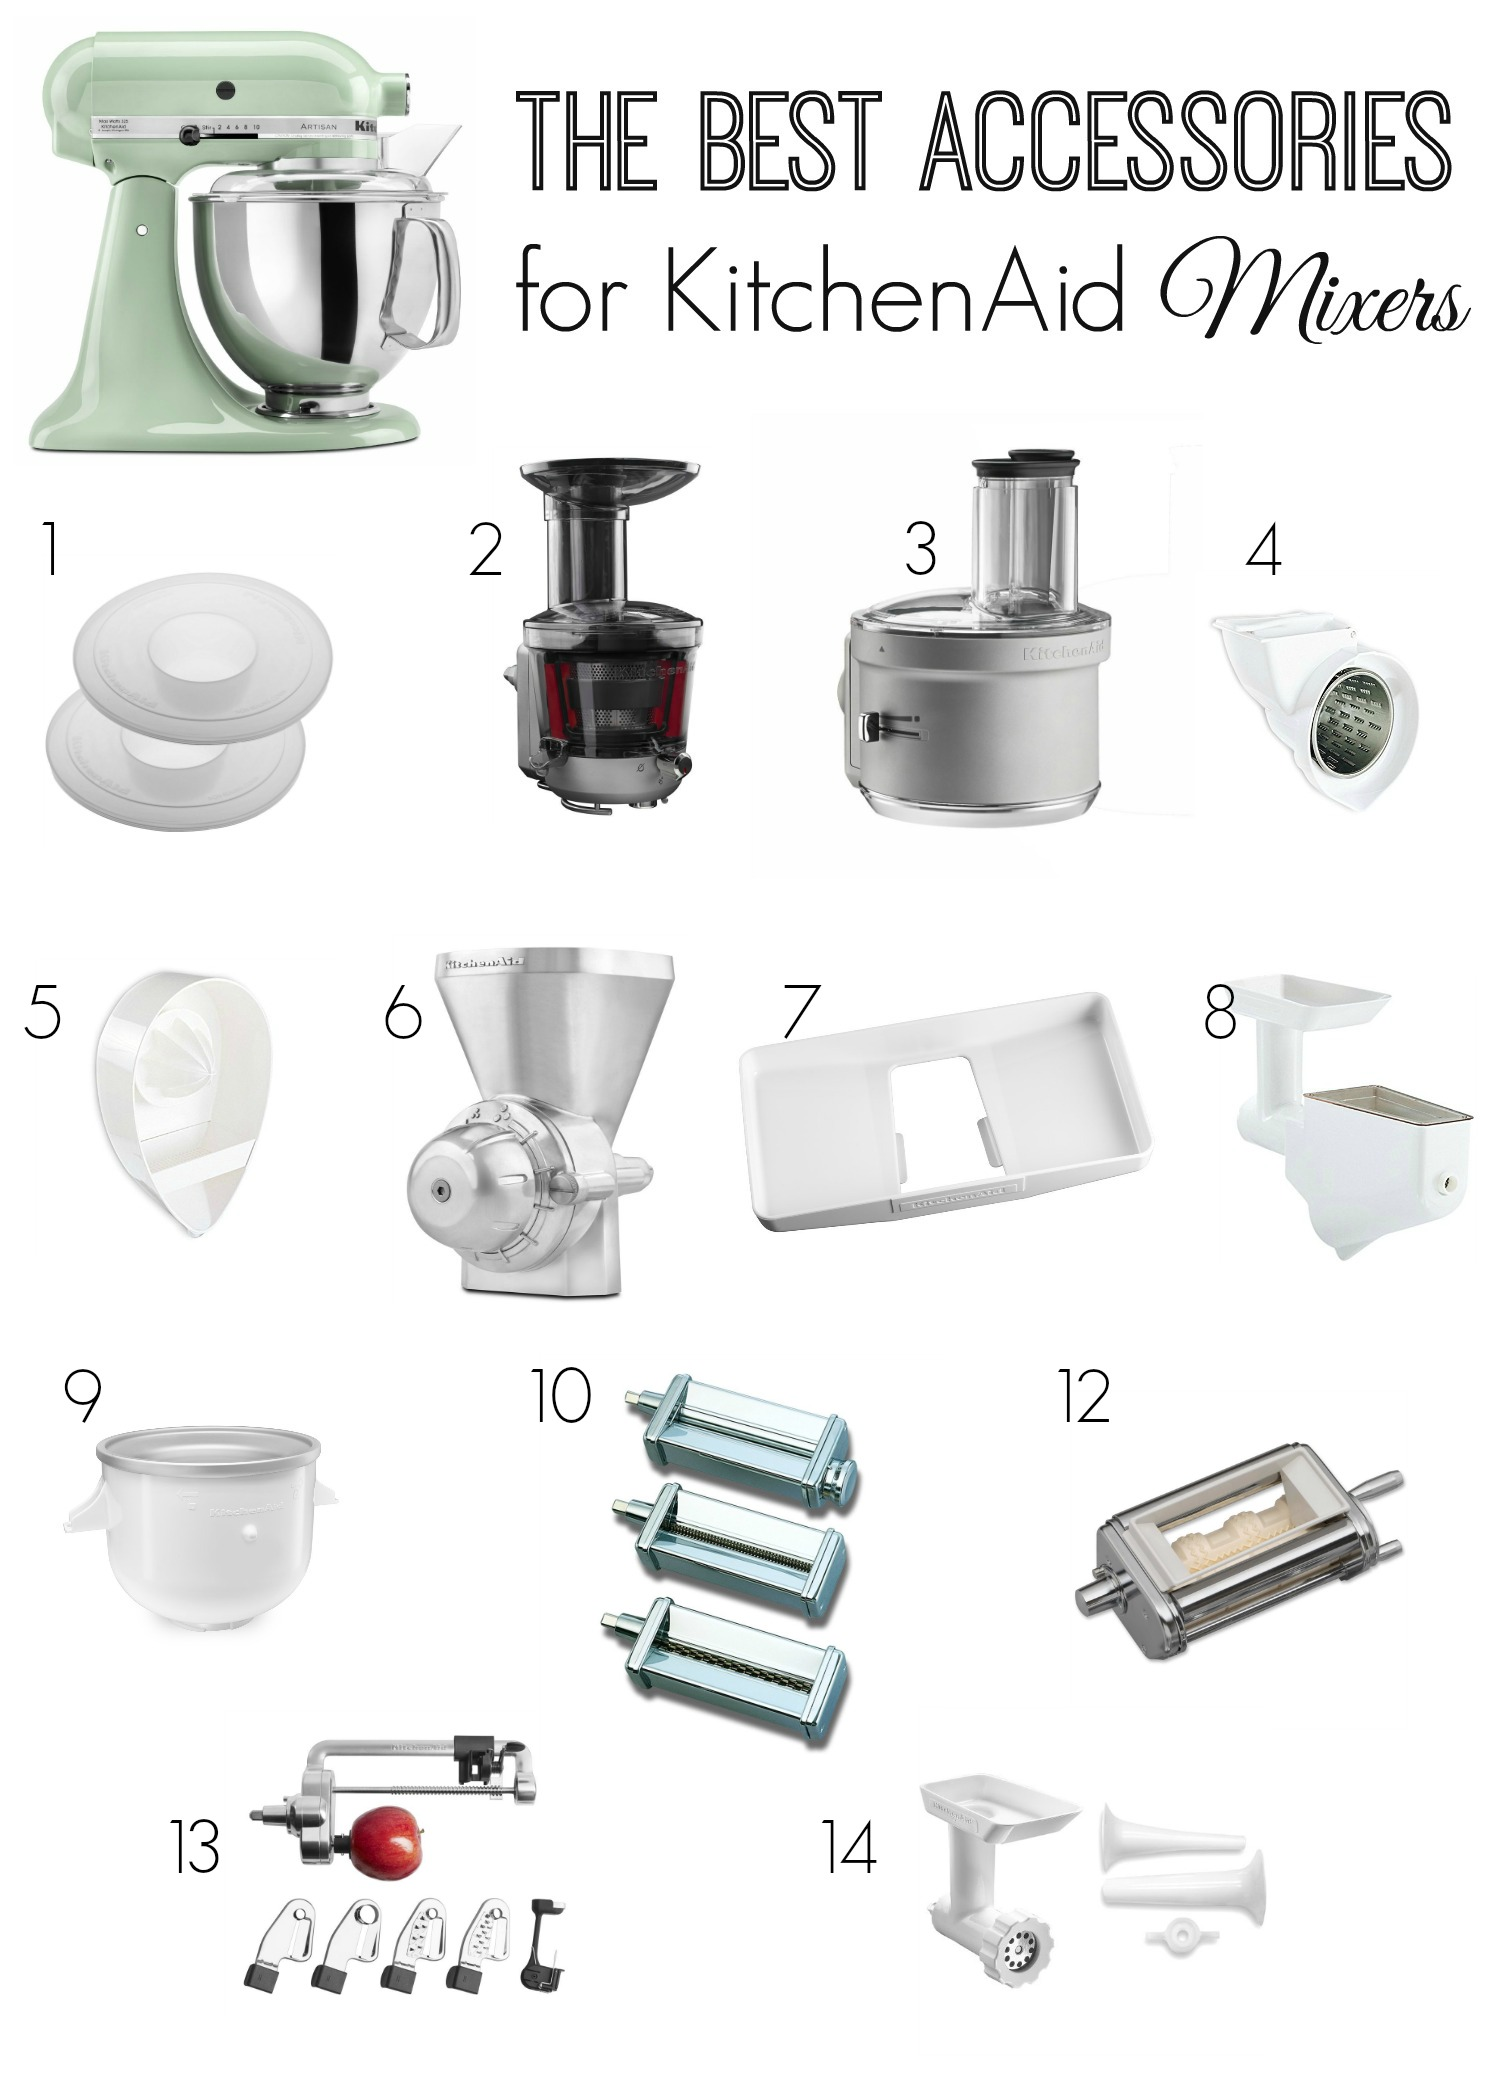 kitchen mixer accessories 13 best accessories for kitchenaid mixers the 2306